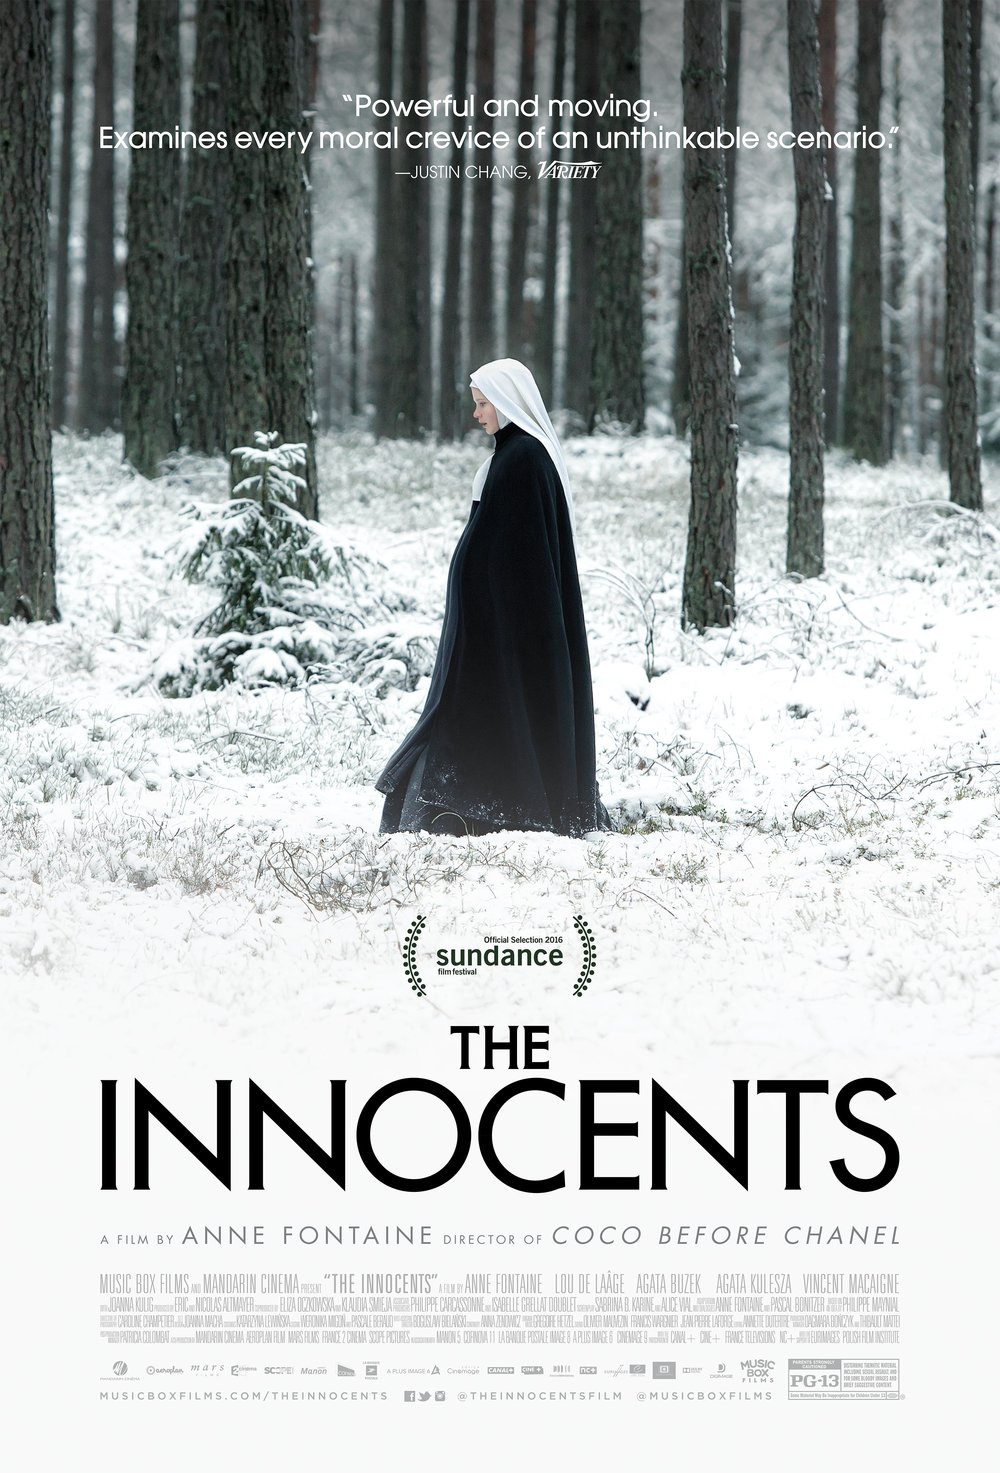 TheInnocents_Poster.jpg